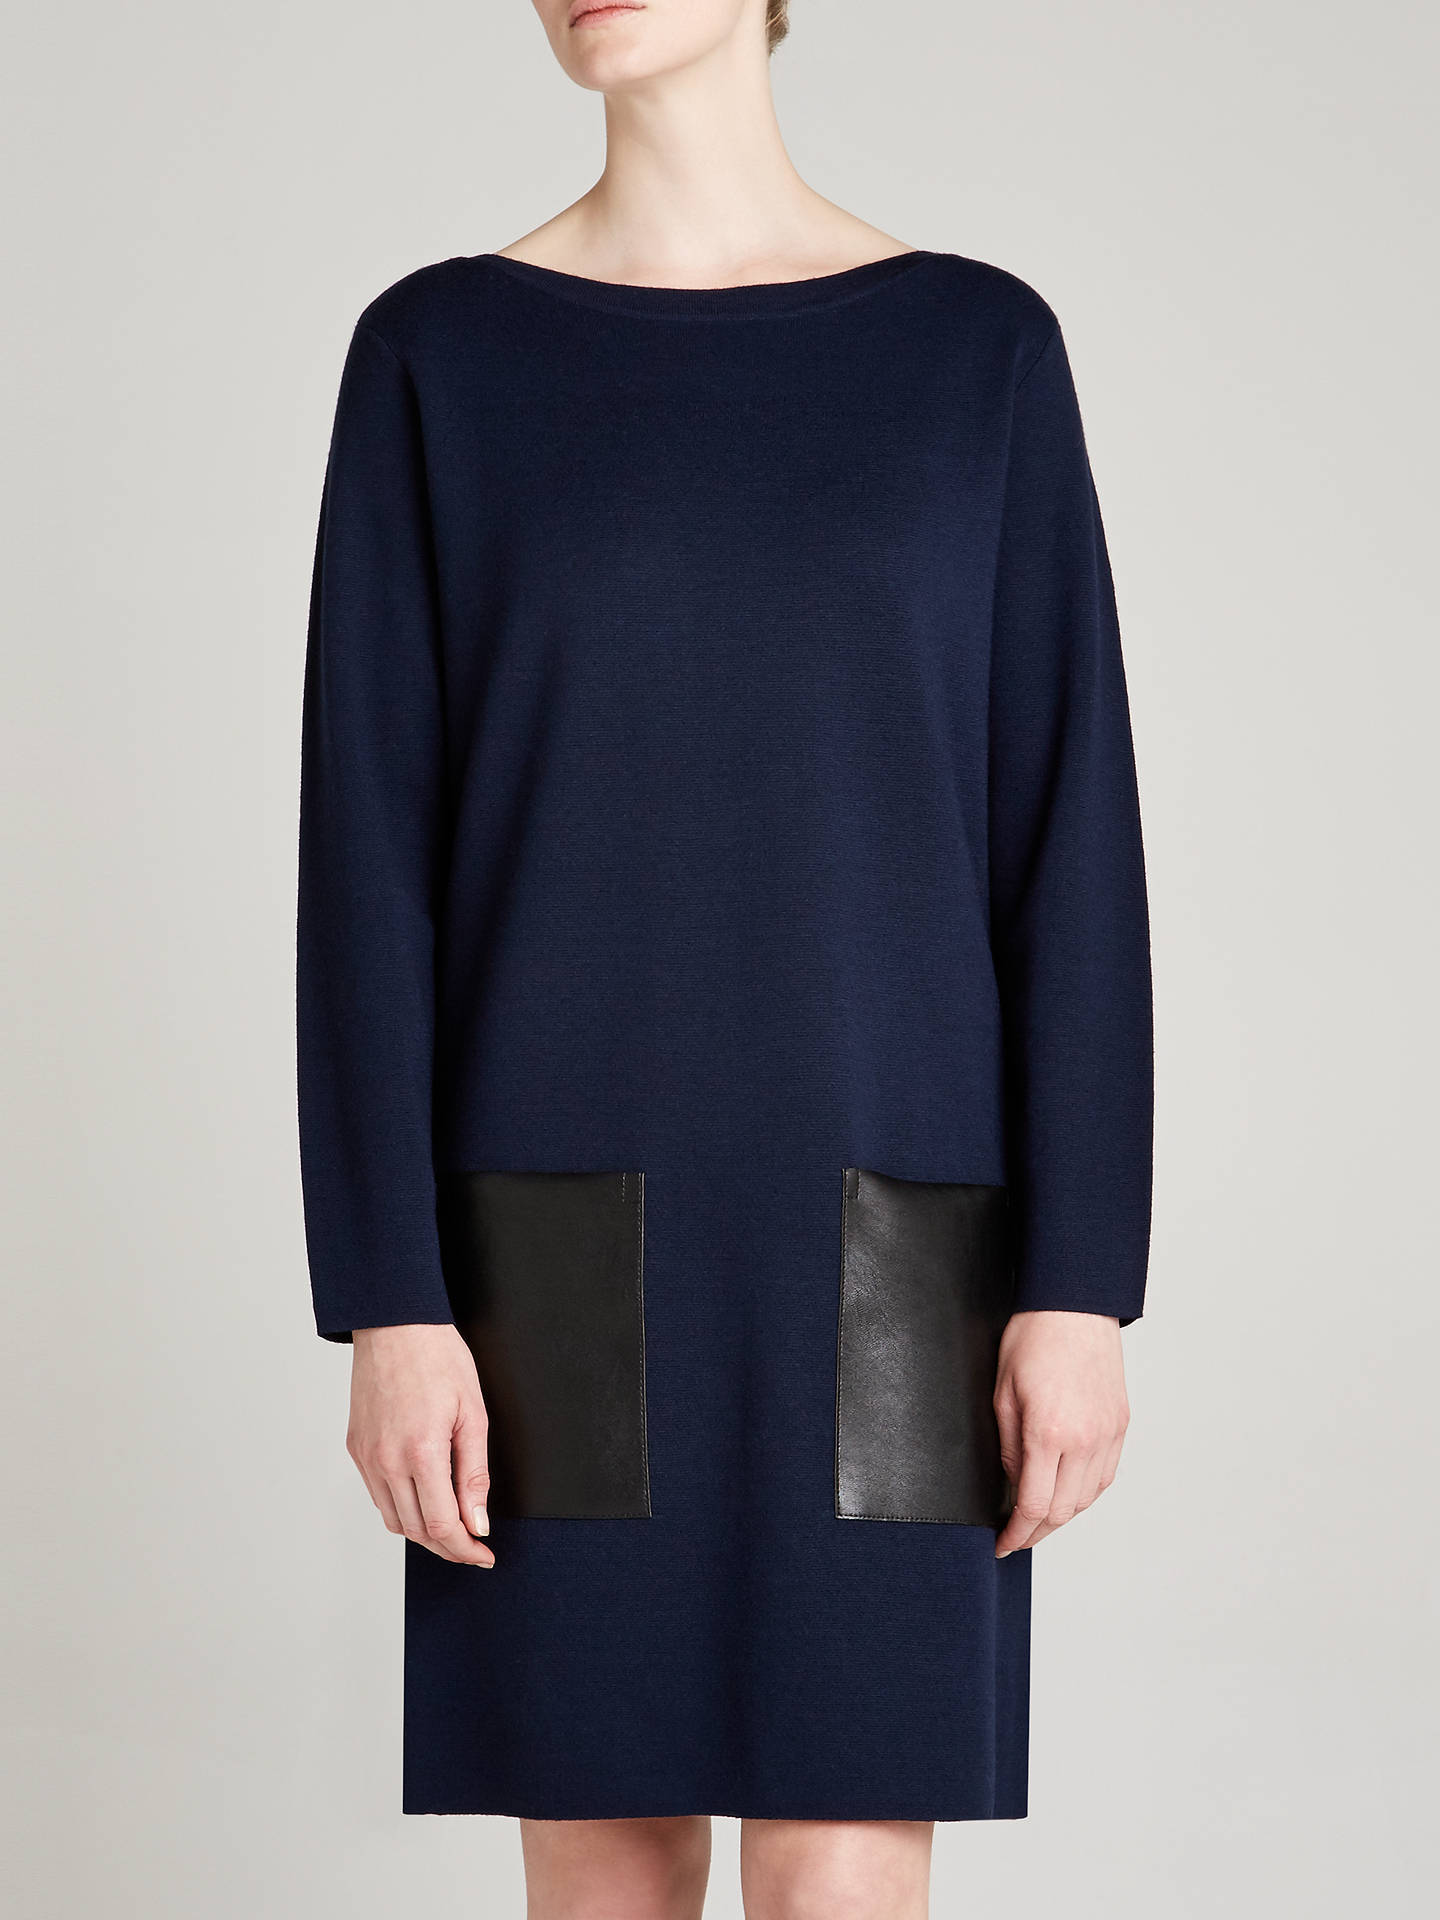 BuyWinser London Merino Wool Pocket Dress, Midnight/Black, XS Online at johnlewis.com